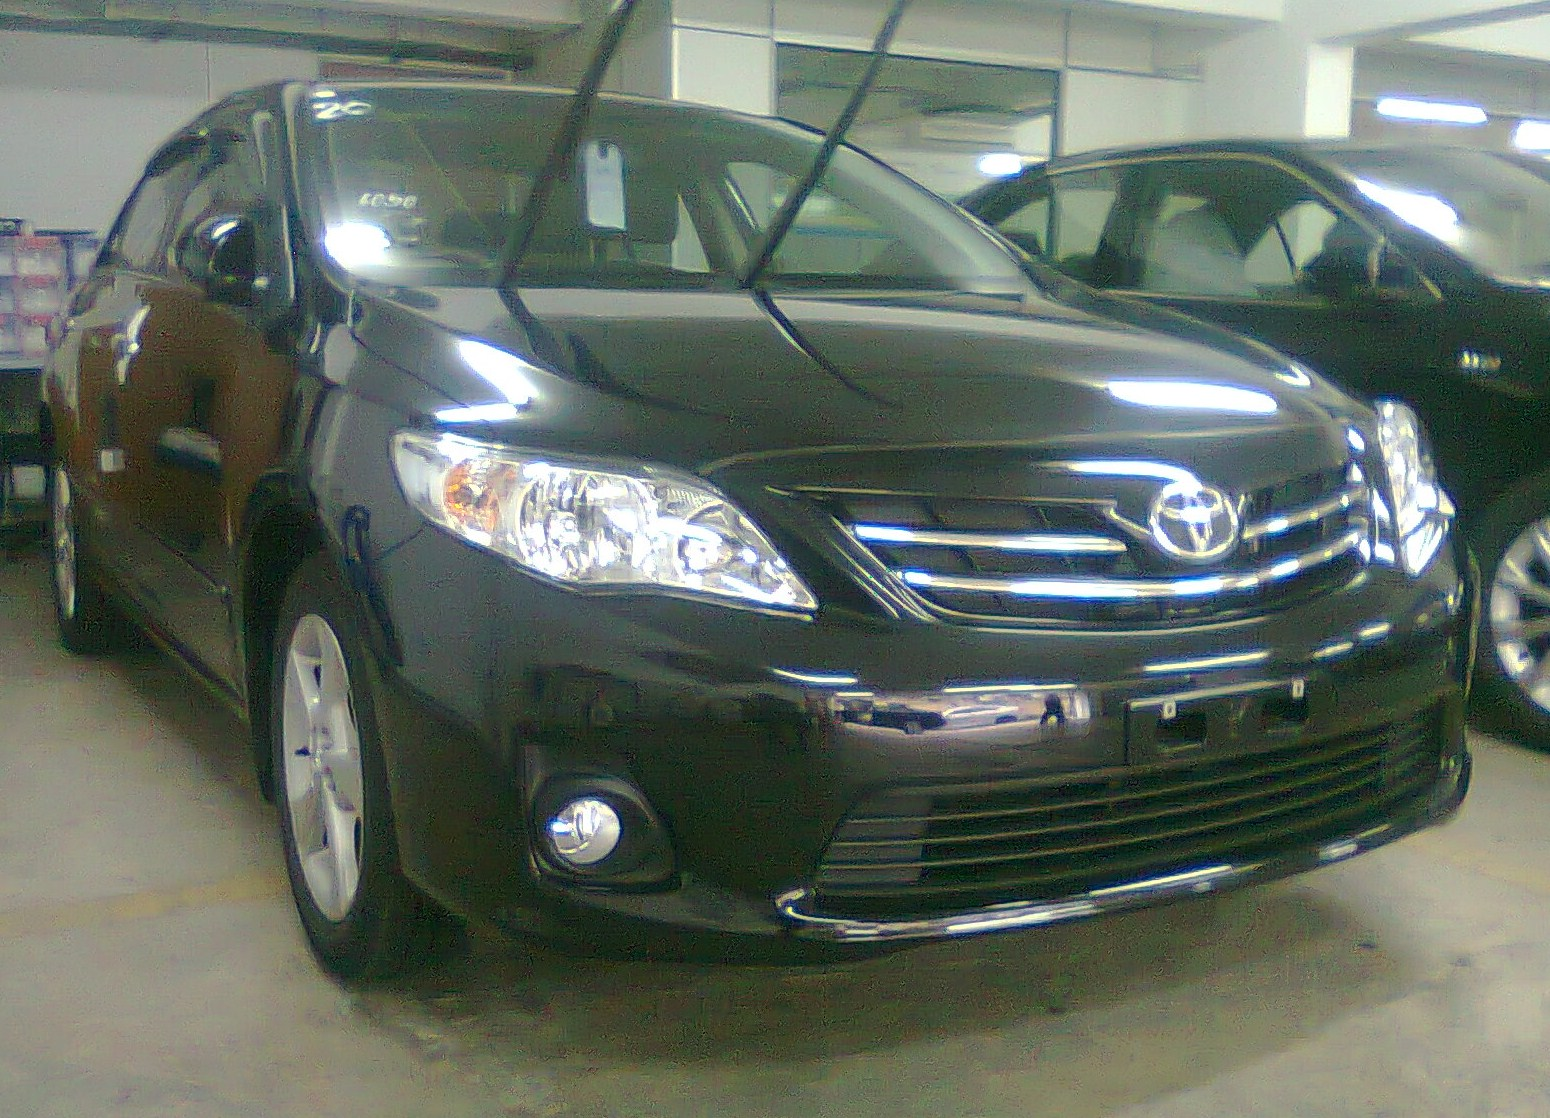 brand new toyota altis price innova venturer 2017 2012 1 6 8 and 2 dual vvt i